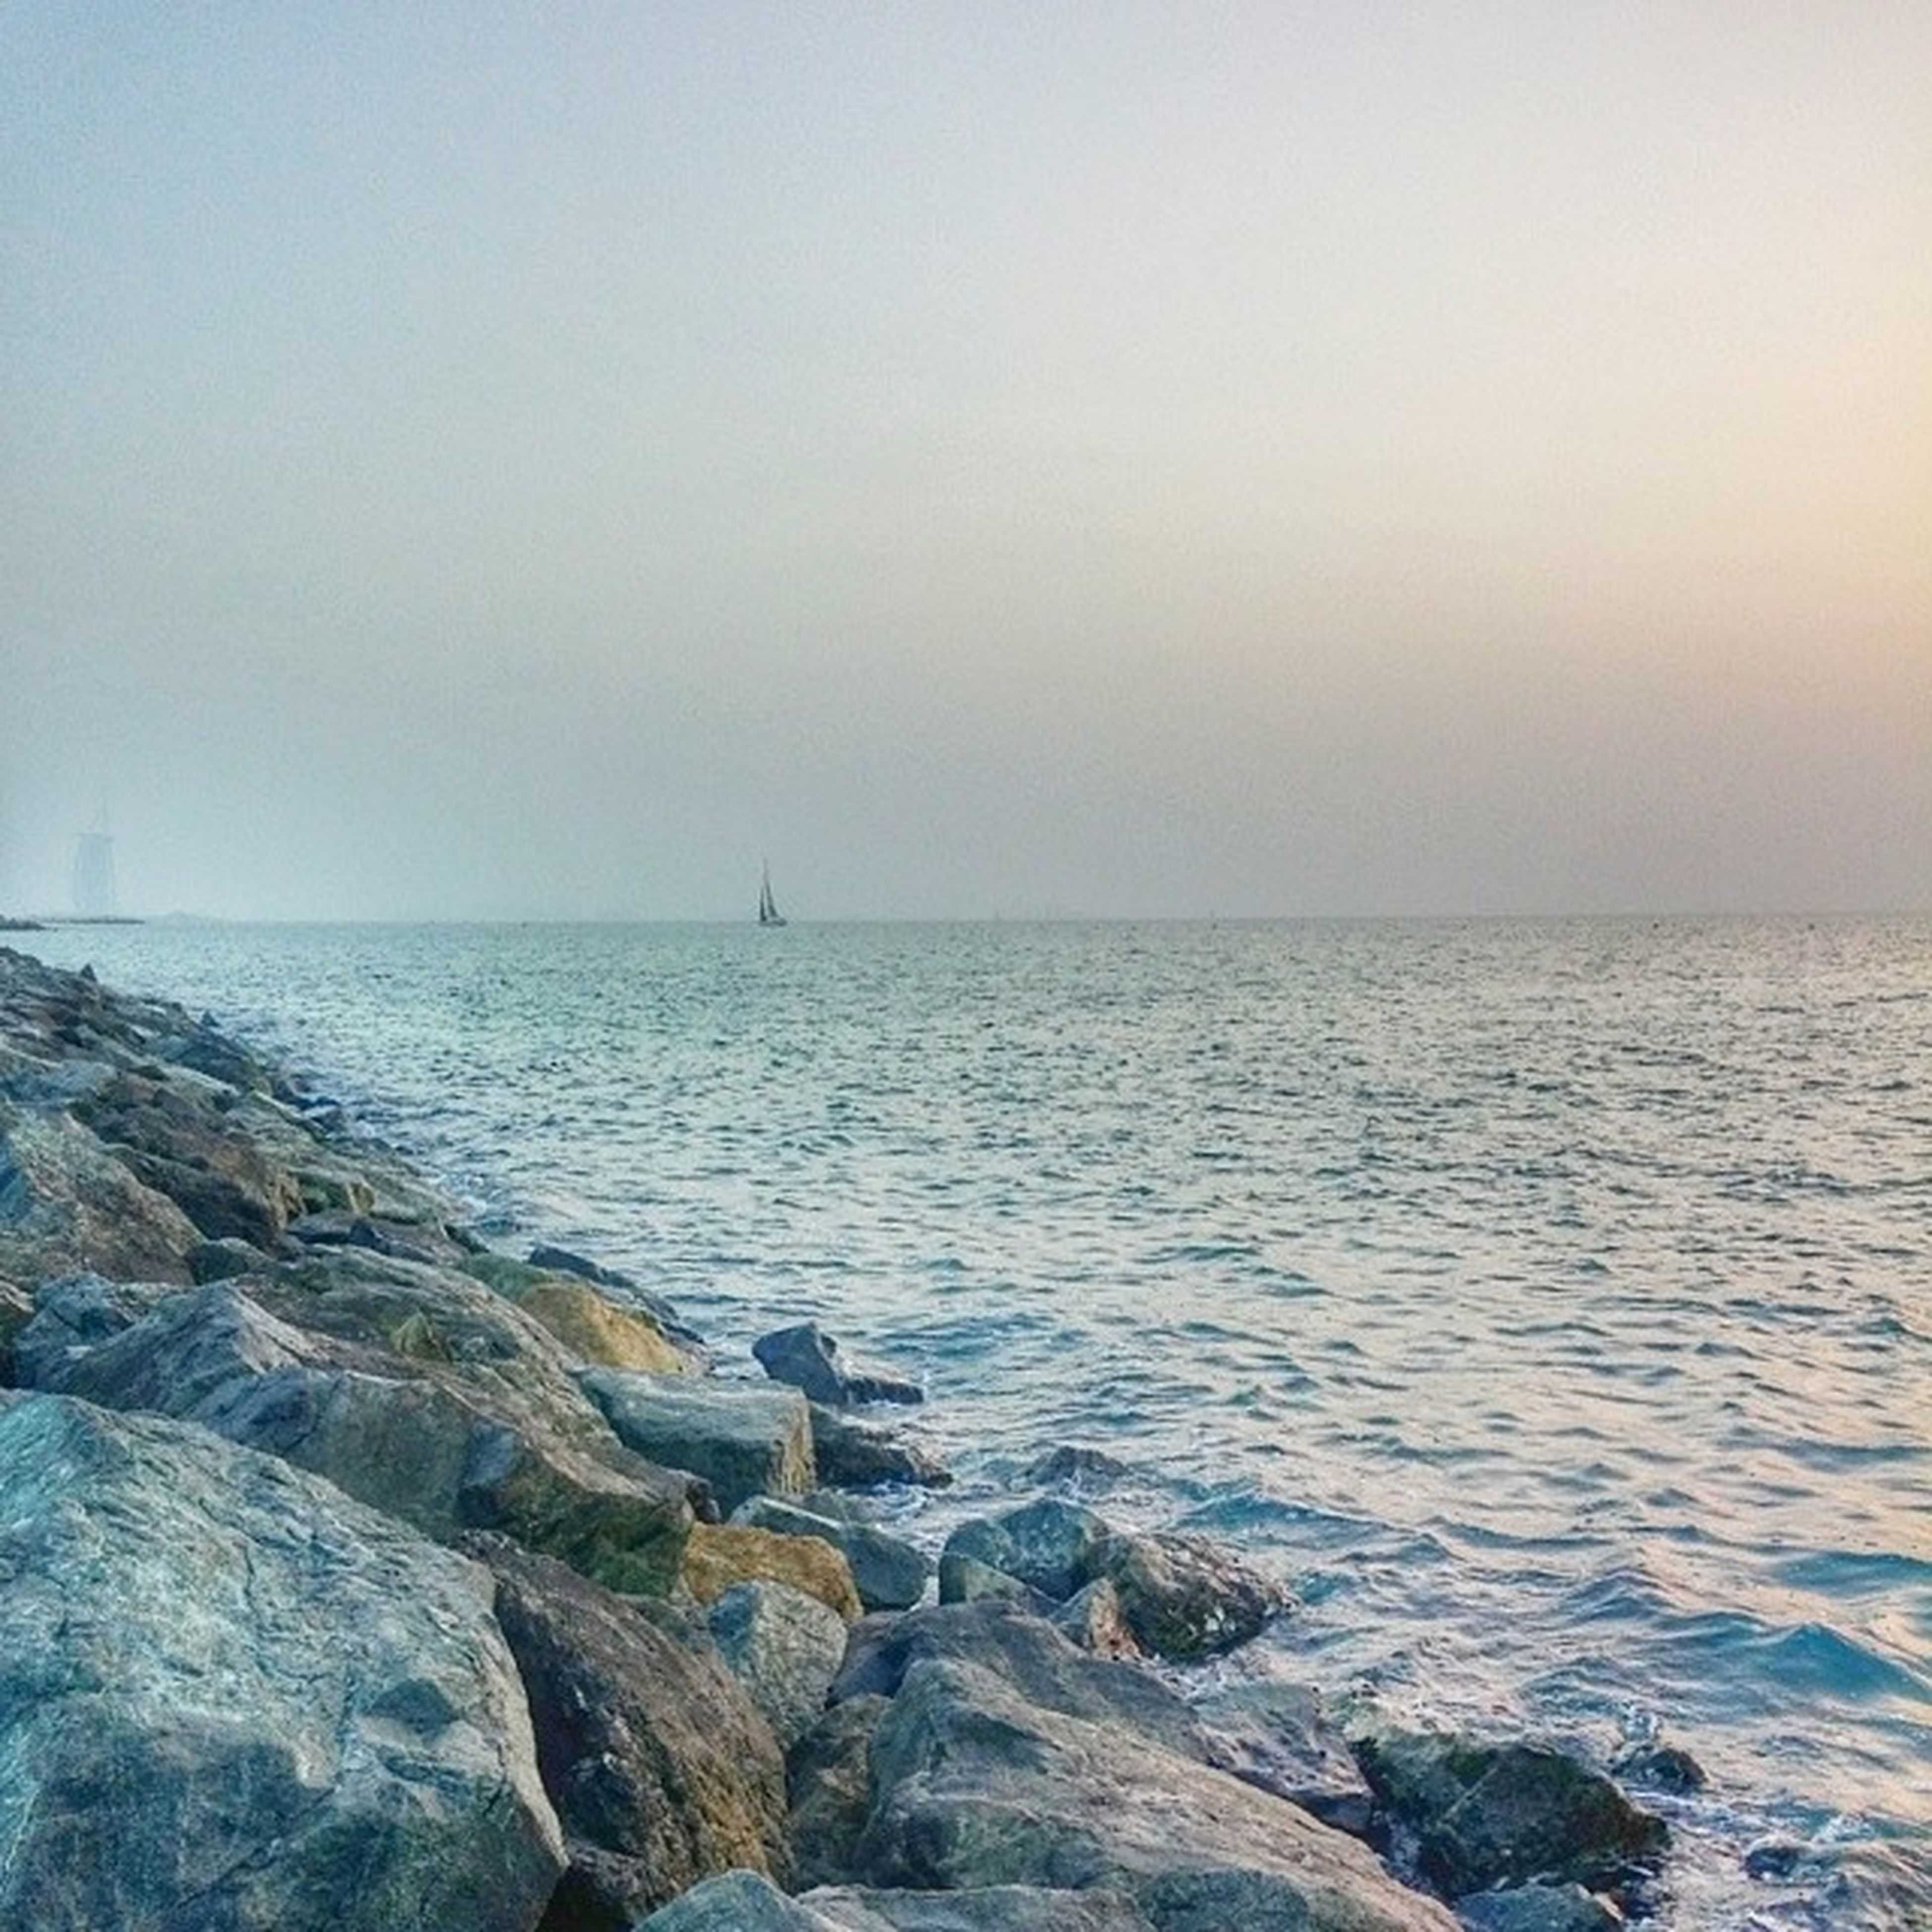 sea, water, horizon over water, scenics, tranquil scene, tranquility, beauty in nature, copy space, clear sky, rock - object, nature, idyllic, seascape, shore, sky, remote, beach, sunset, calm, rippled